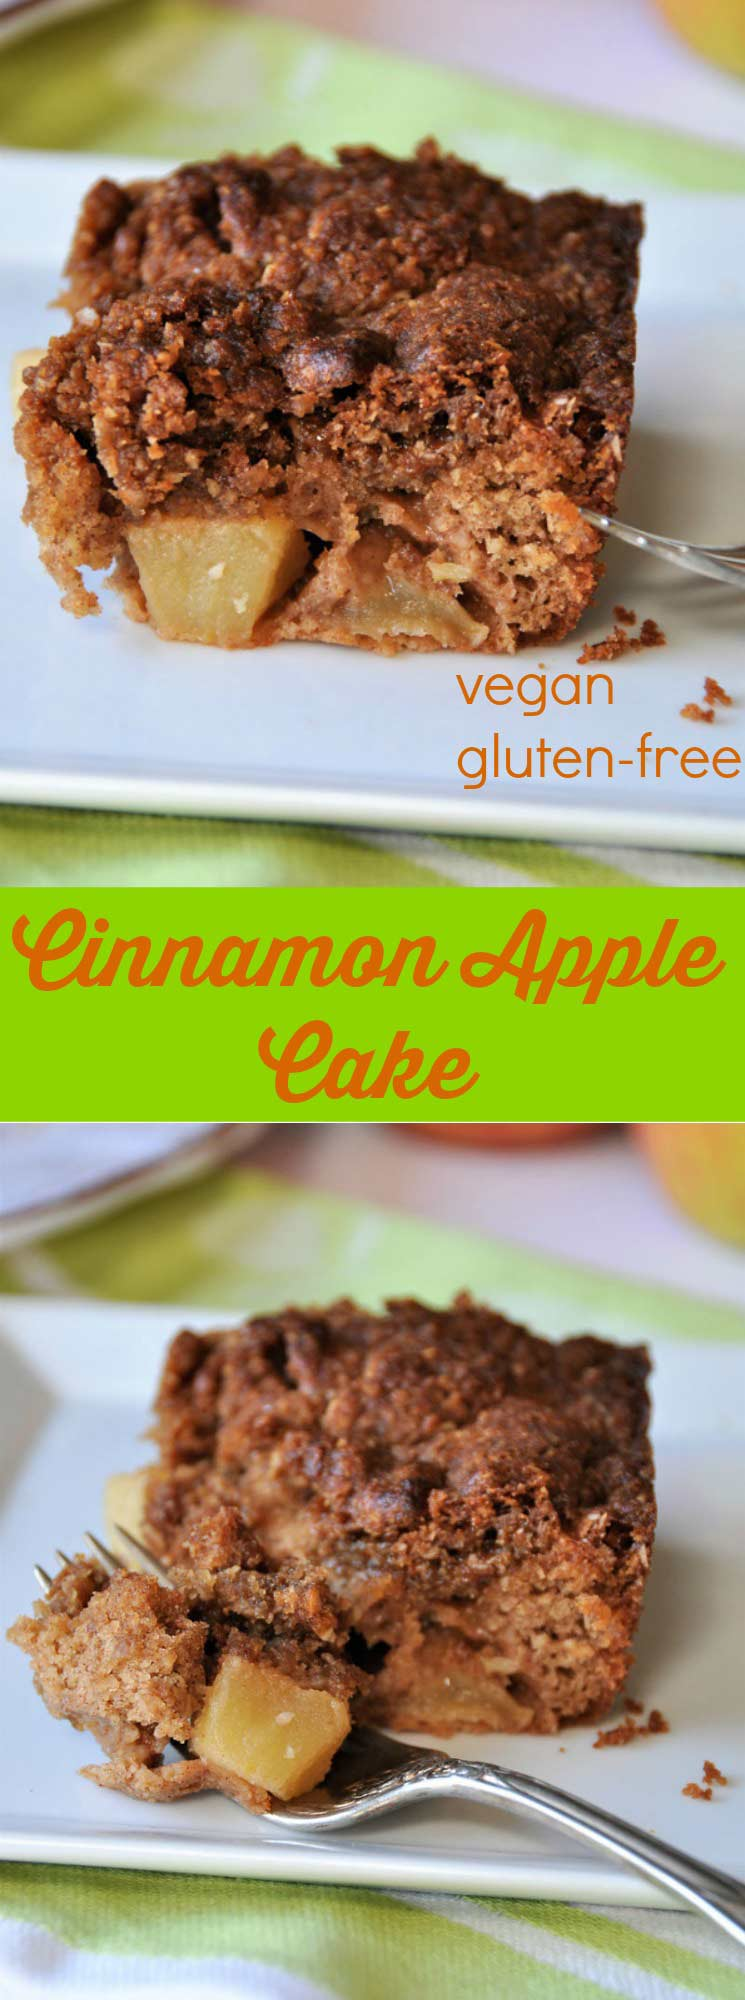 Vegan apple cinnamon crunch cake! The perfect refined sugar-free dessert!